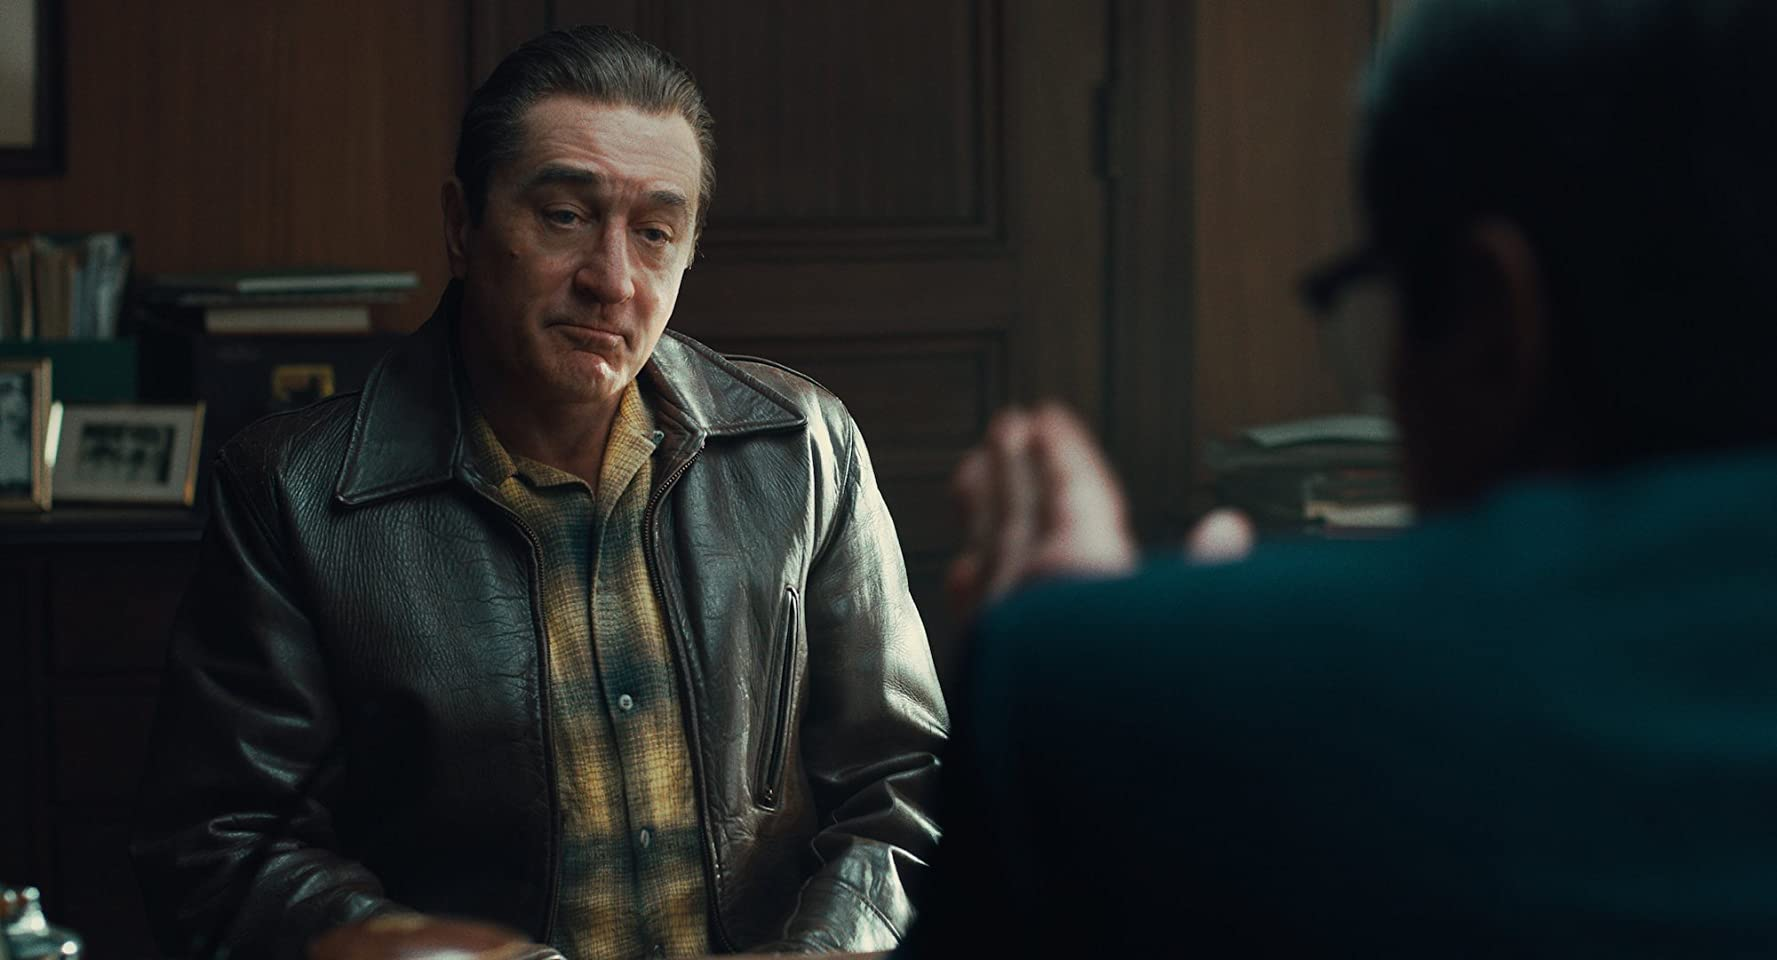 Robert De Niro and Ray Romano in The Irishman (2019)